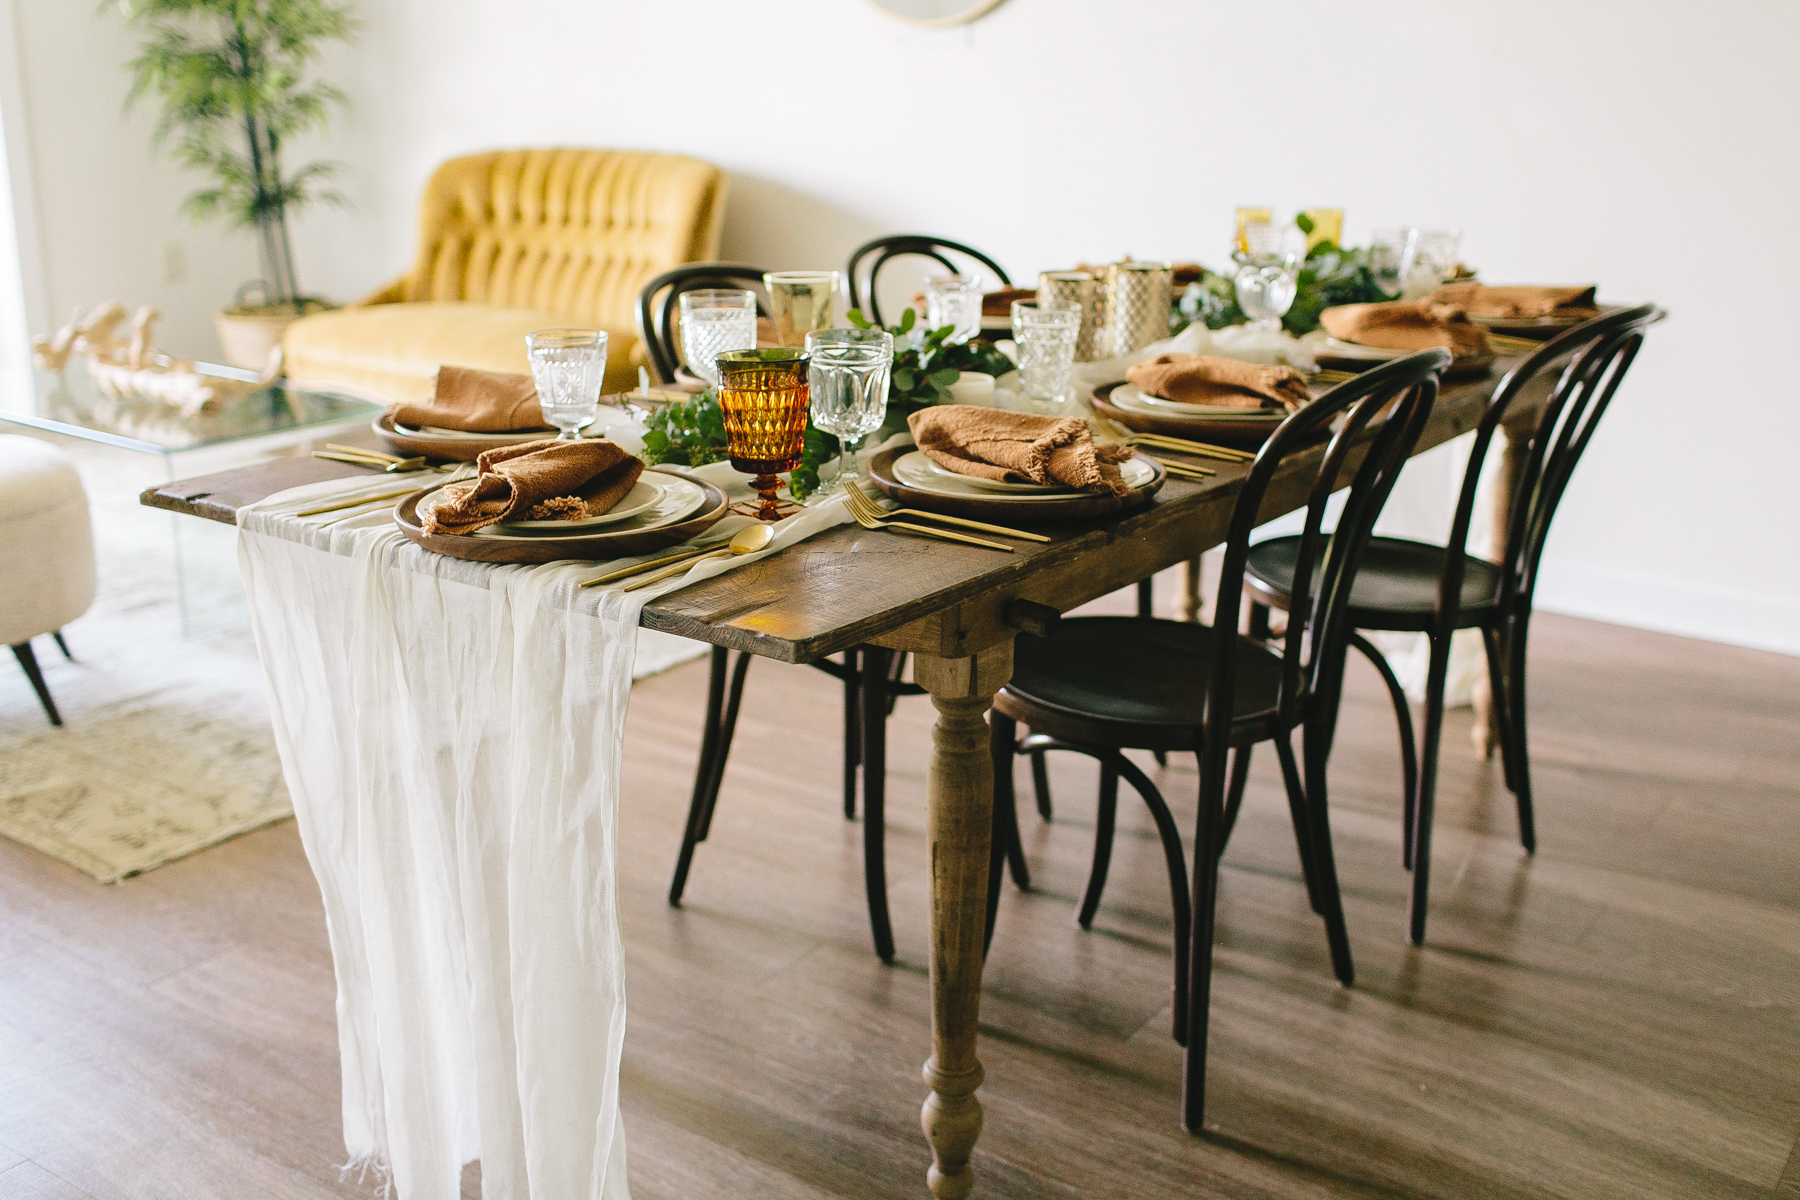 livvyland-blog-olivia-watson-zilkr-condo-loot-vintage-friendsgiving-tablescape-table-setup-idea-6